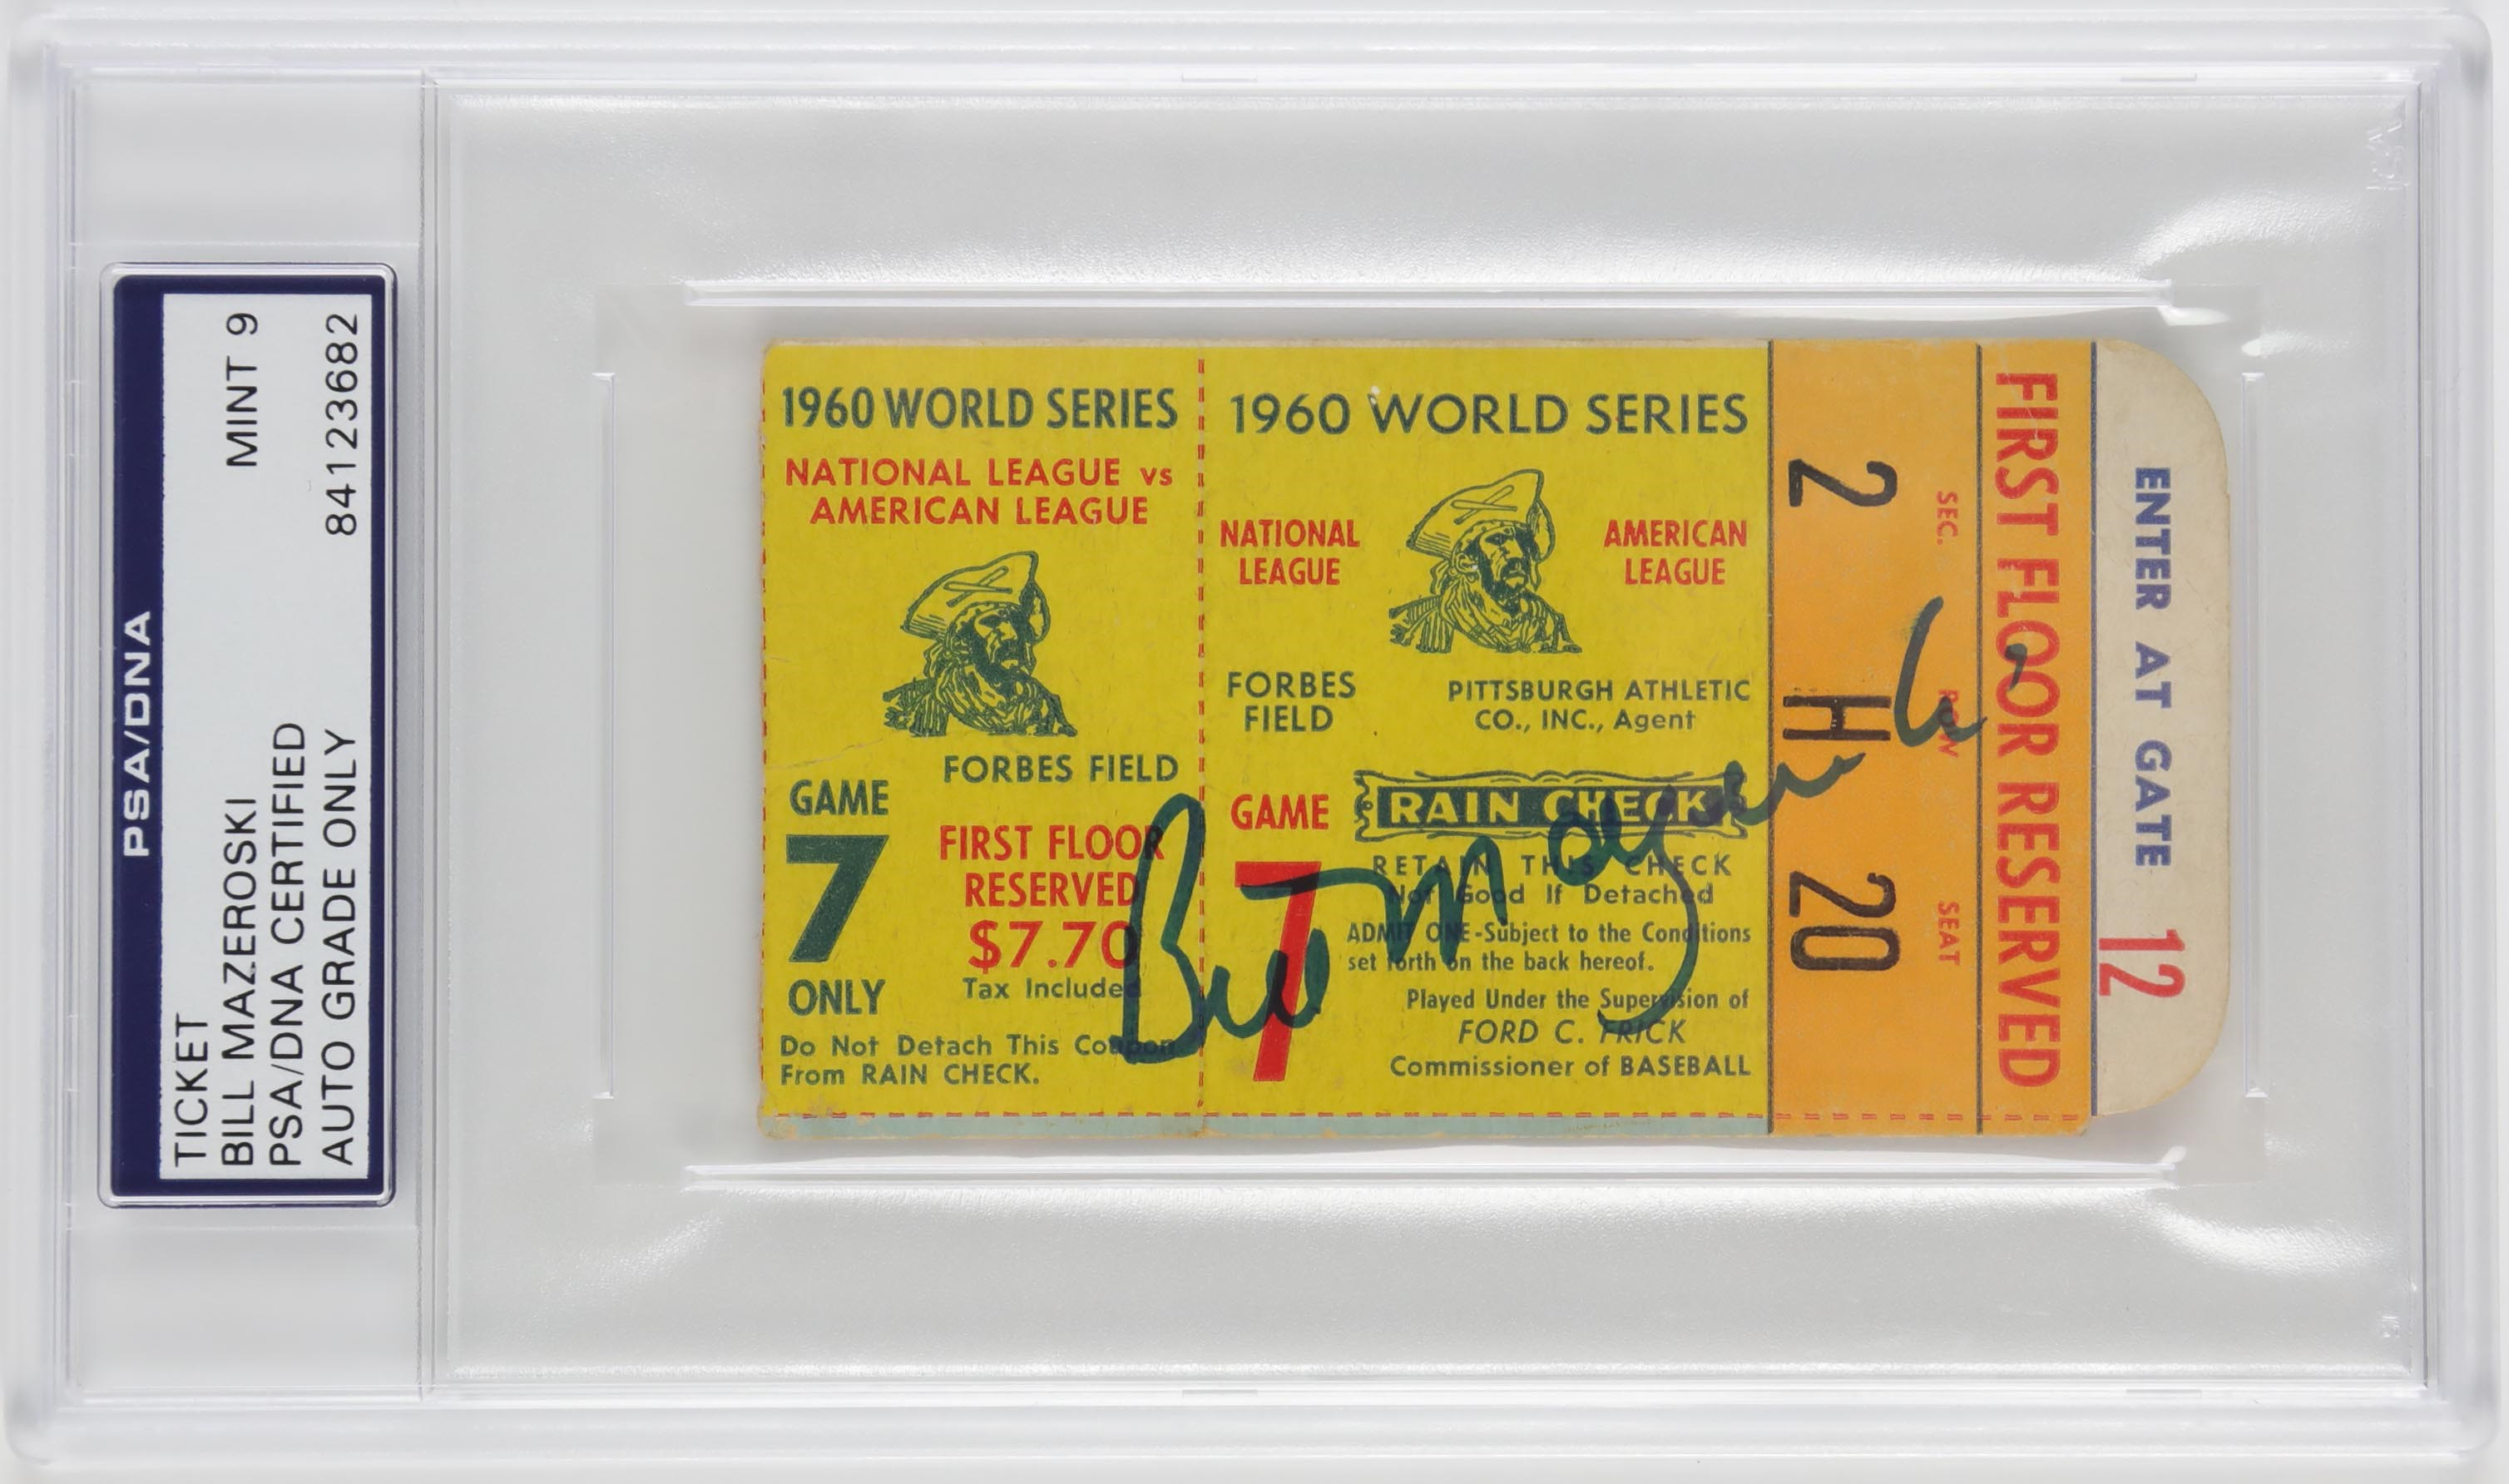 1960 World Series Game 7 Ticket Signed by Bill Mazeroski (PSA MINT 9)